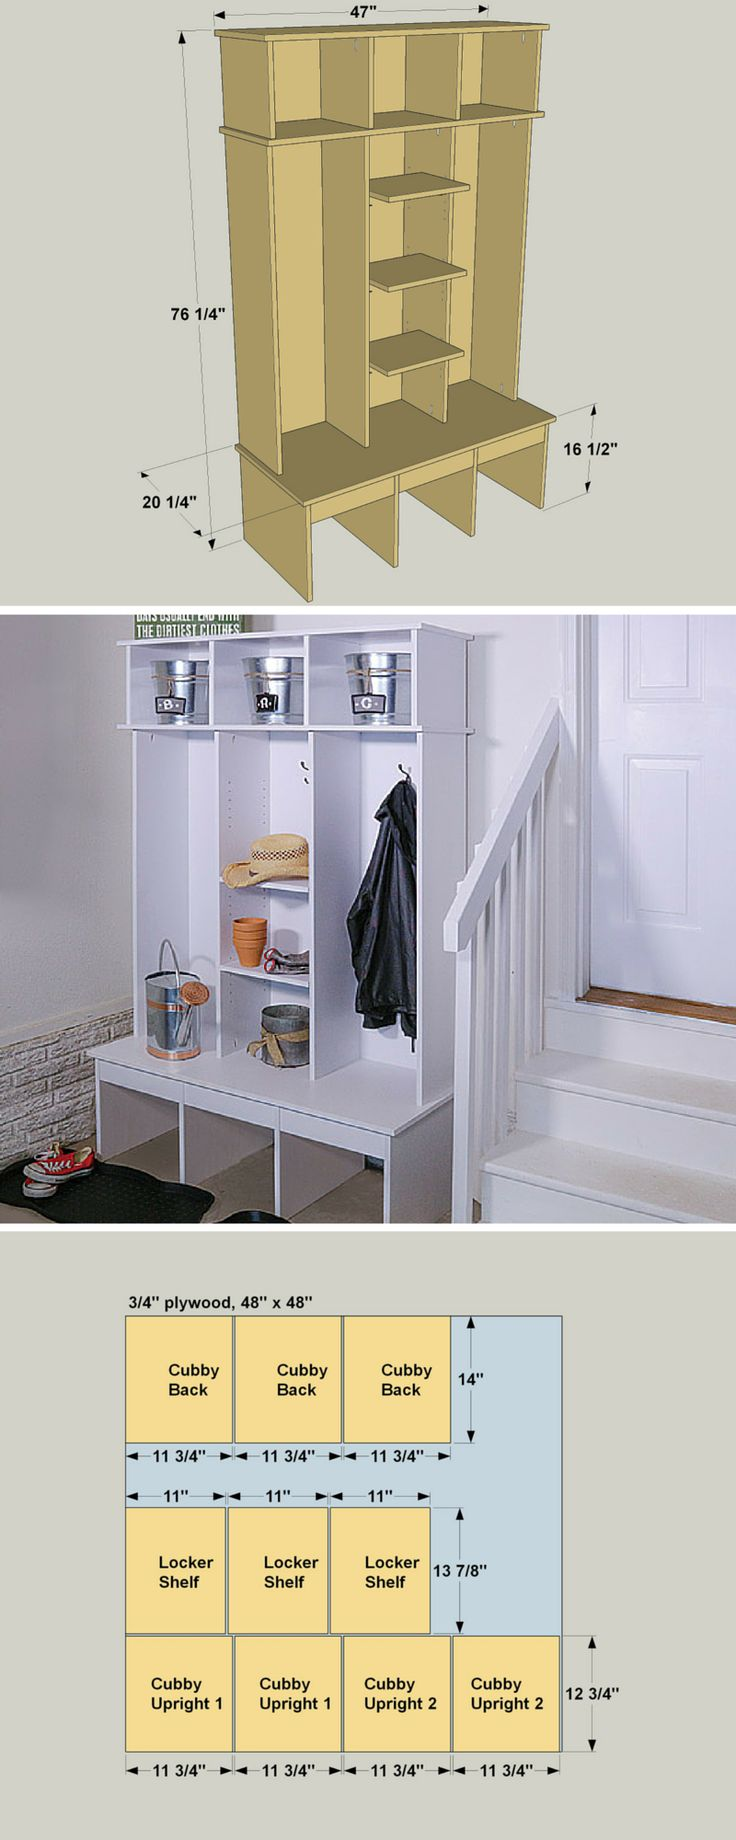 This entryway organizer hold coats  hats  gloves  and more to keep clutter under control  and looks great doing it  You can build one yourself using several basic tools  a few pieces of plywood  one board and some inexpensive molding  With a shelf pin jig  and you can add adjustable shelves  too  FREE PLANS at buildsomething com